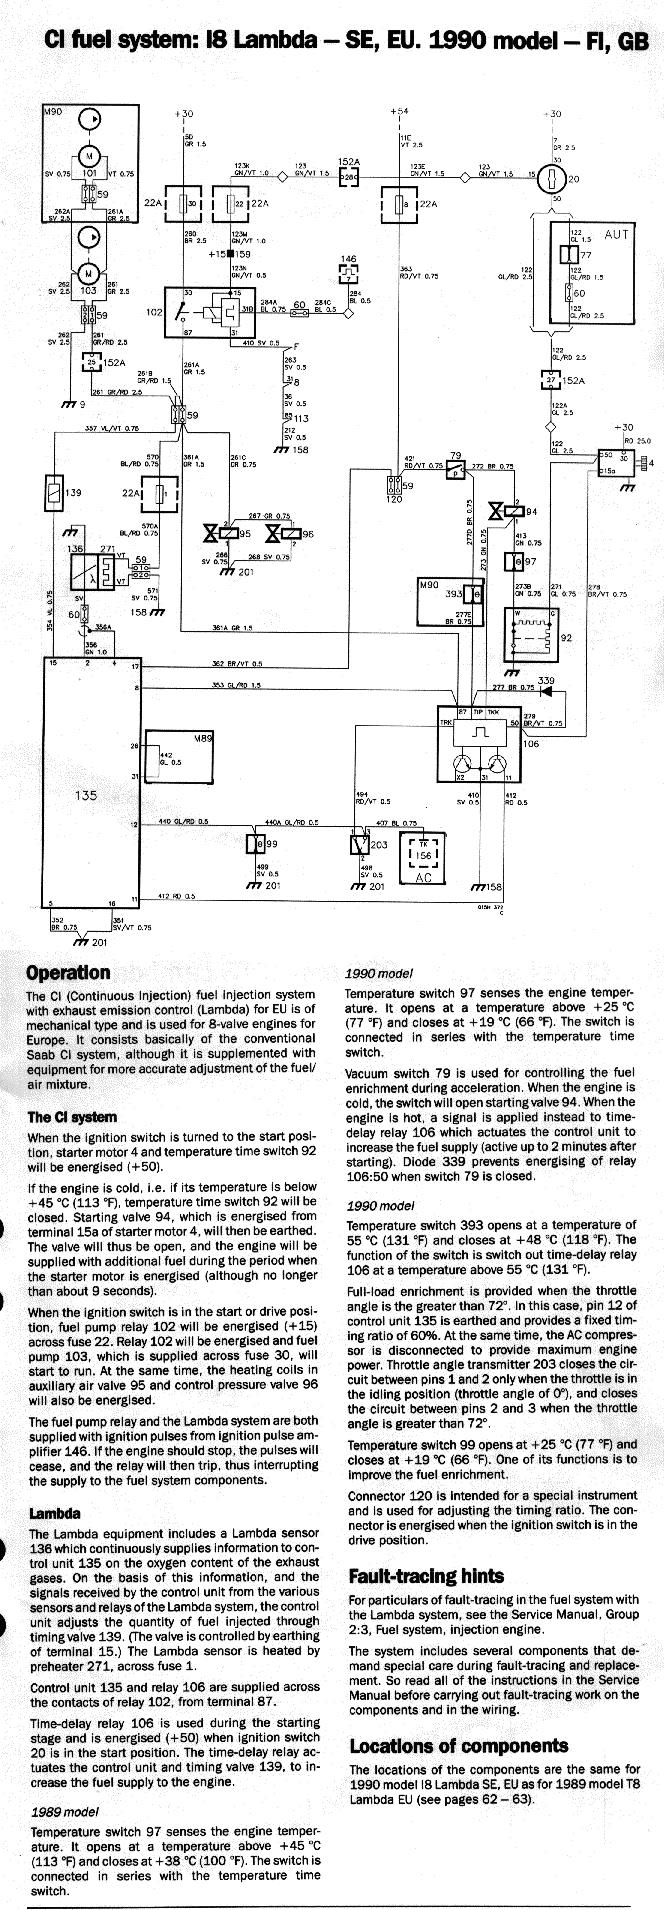 89 Saab 900 Wiring Diagram Great Design Of Fuse Box In 93 84 Se Engine Oil Line 2003 9 3 Parts